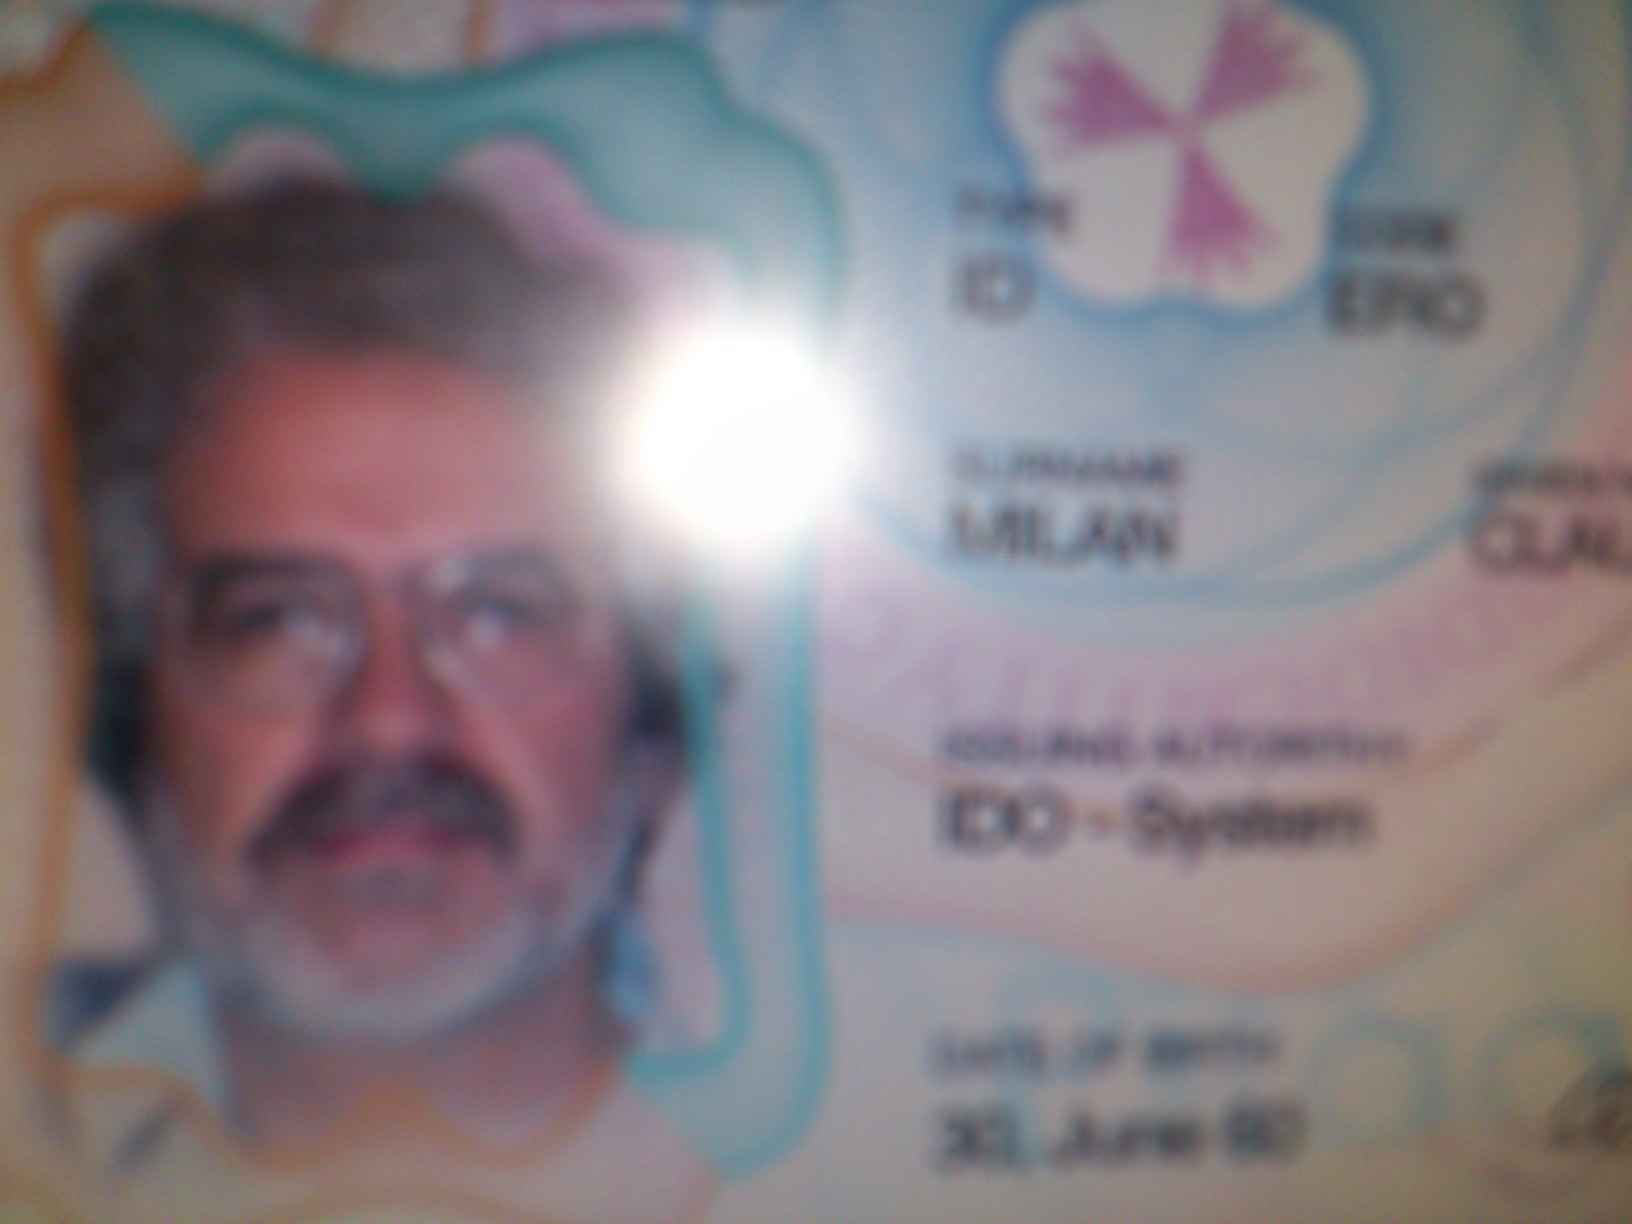 An unacceptable blurry/out of focus ID, with details masked: